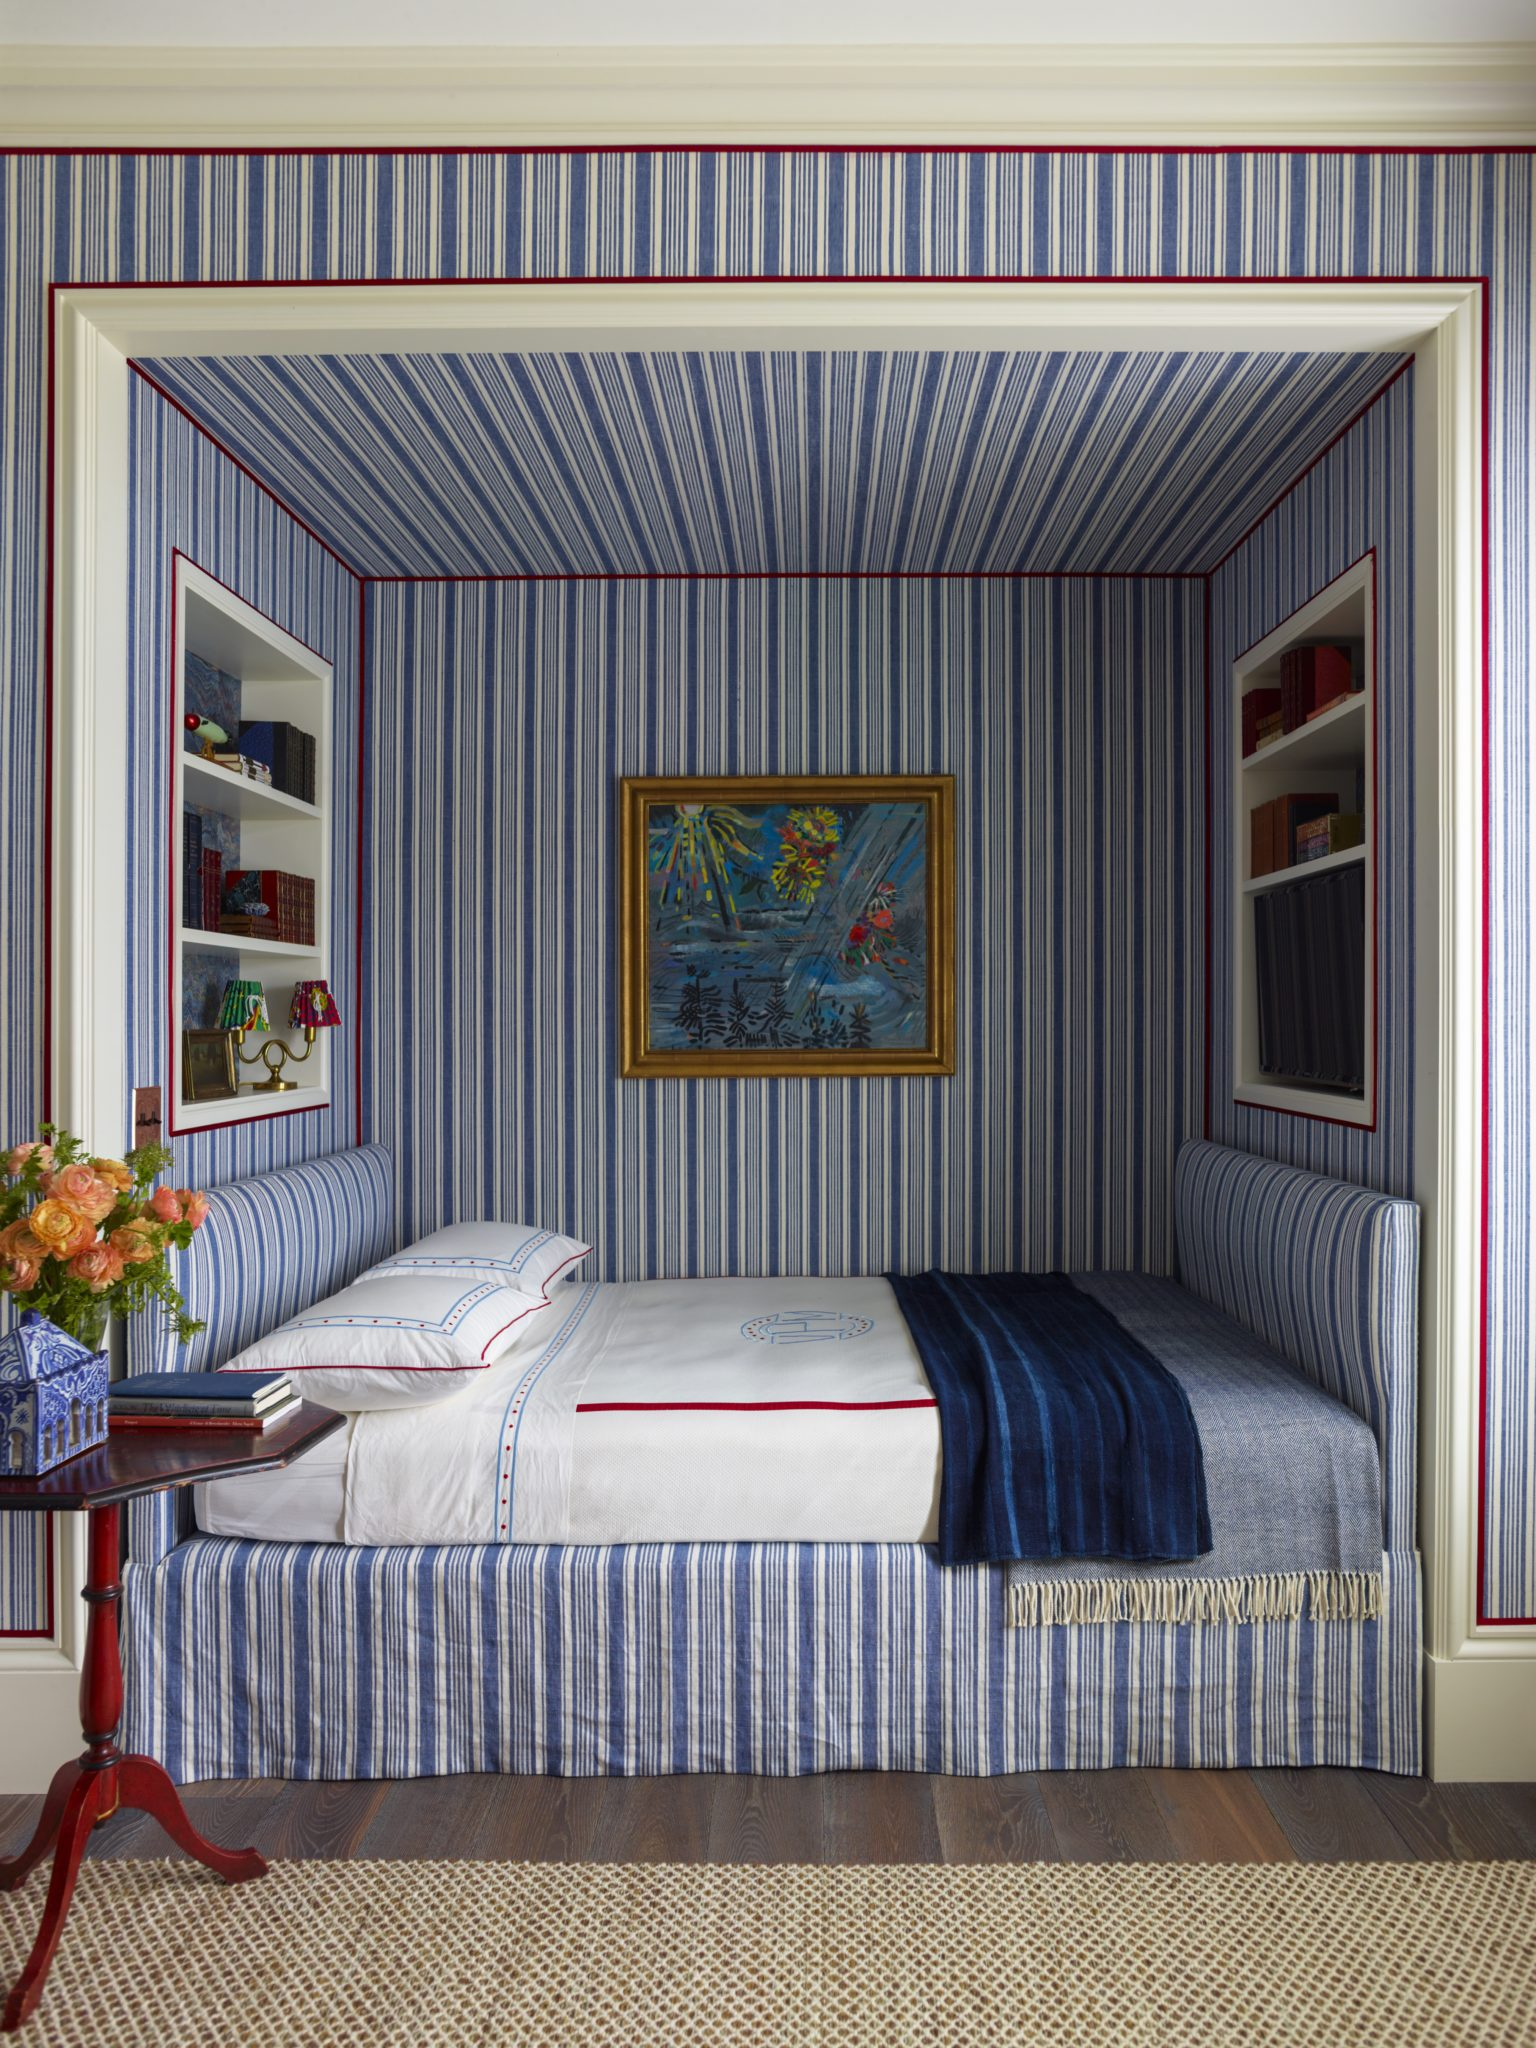 Built-in bed with shelving and blue striped wallpaper by Katie Ridder Inc.